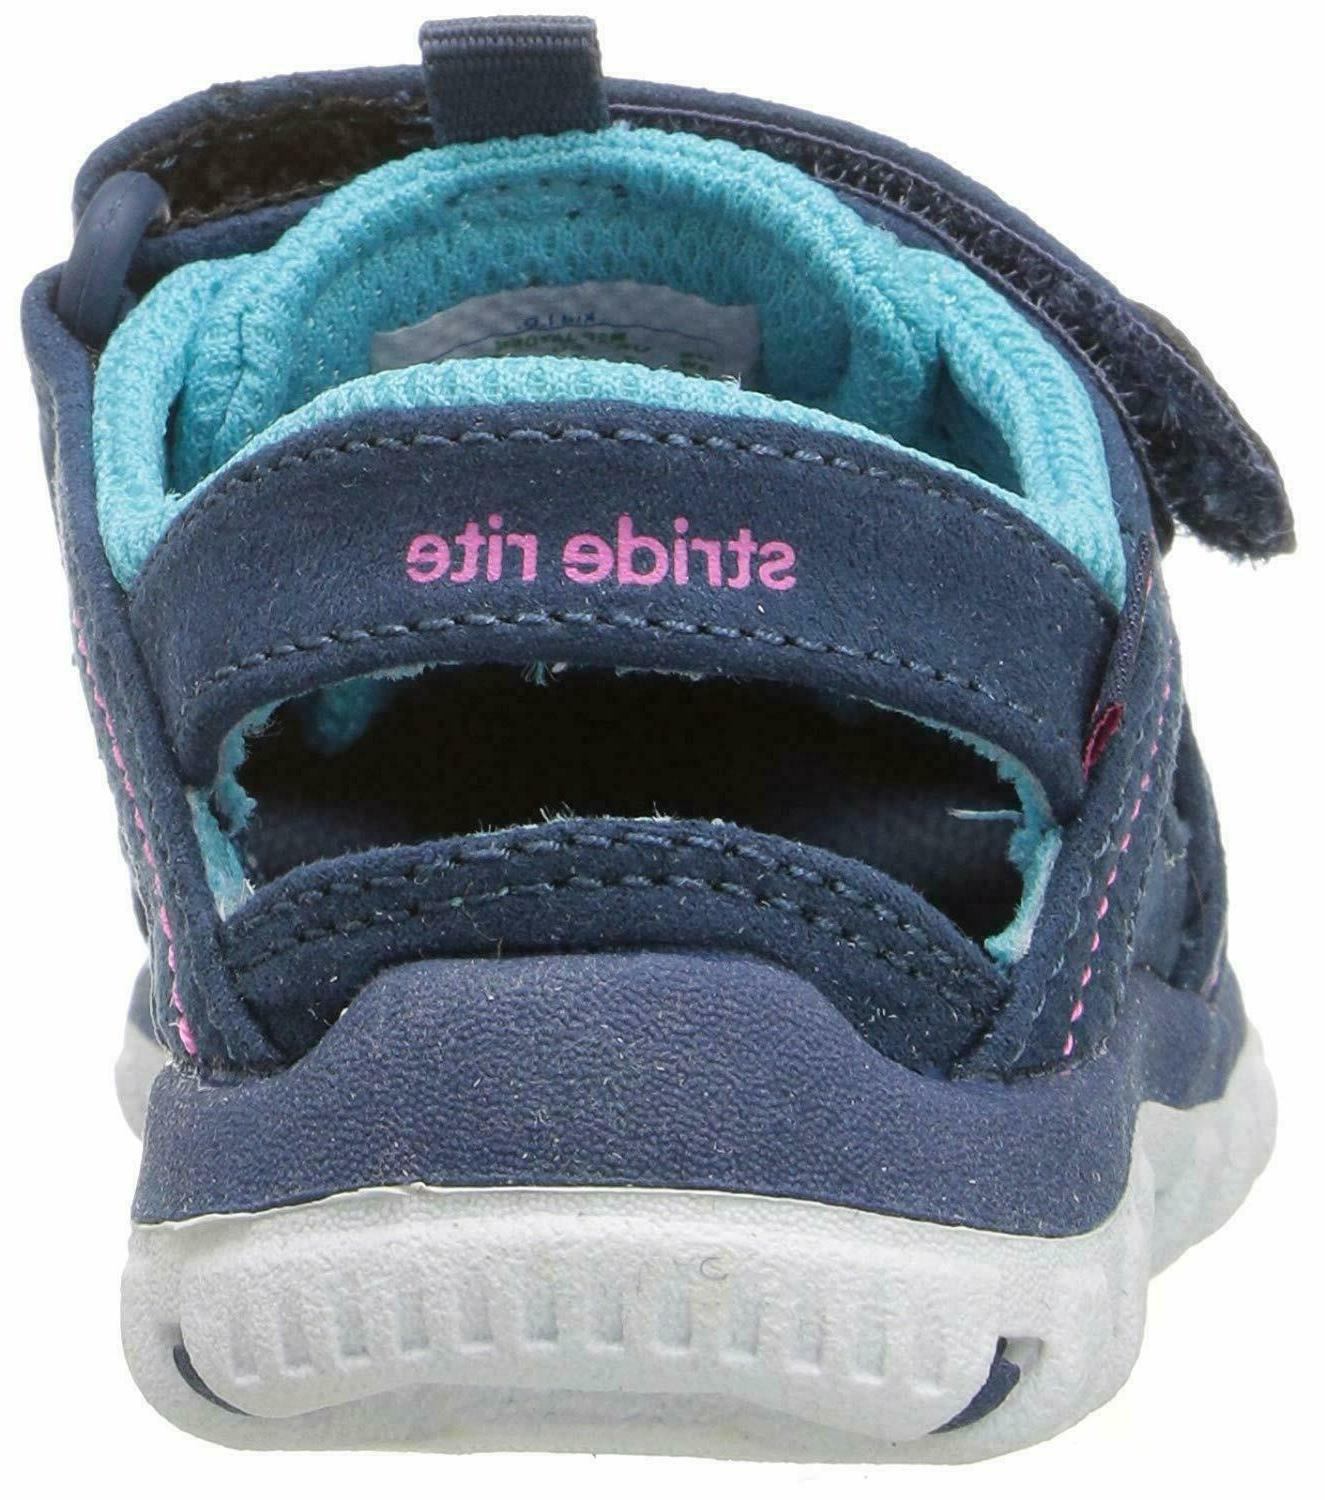 Stride Rite Kids Shoes Sandals Made 2 Play Navy Turquoise